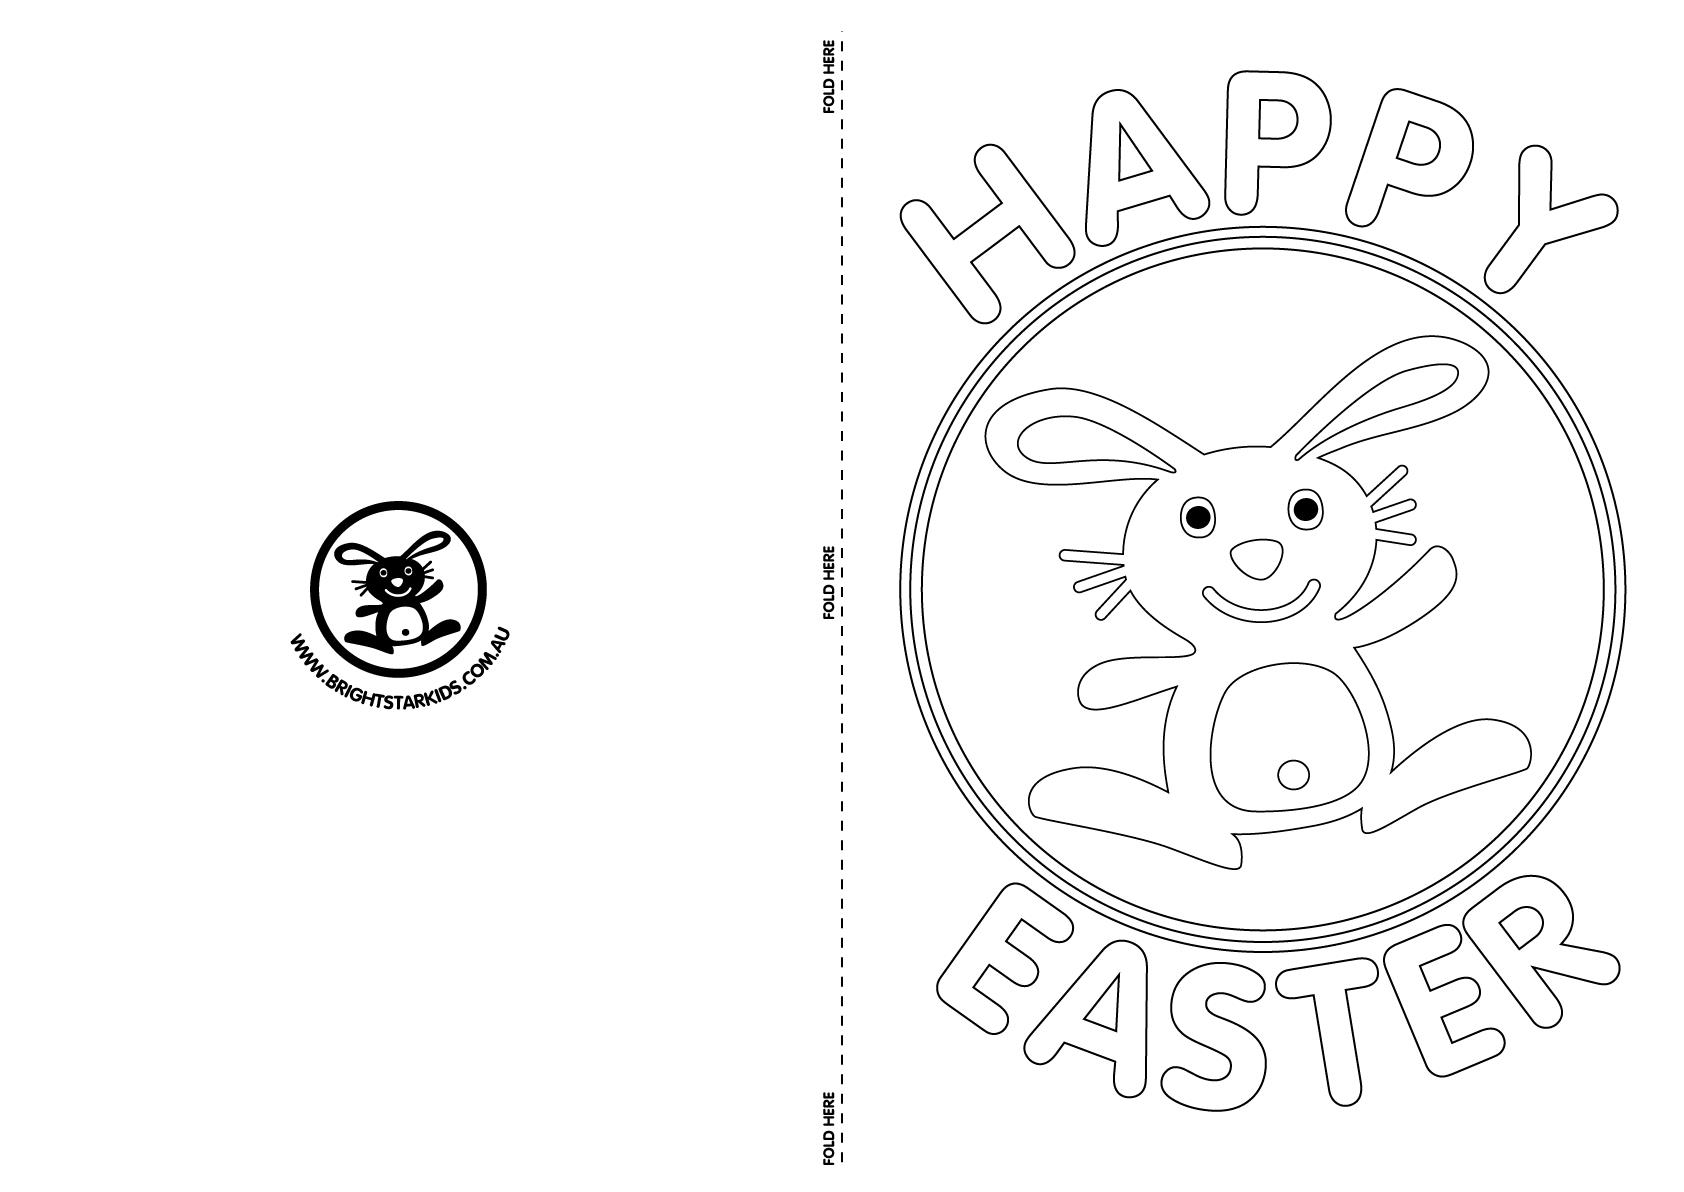 Free Printable Easter Cards For Kids – Hd Easter Images - Free Printable Easter Cards To Print